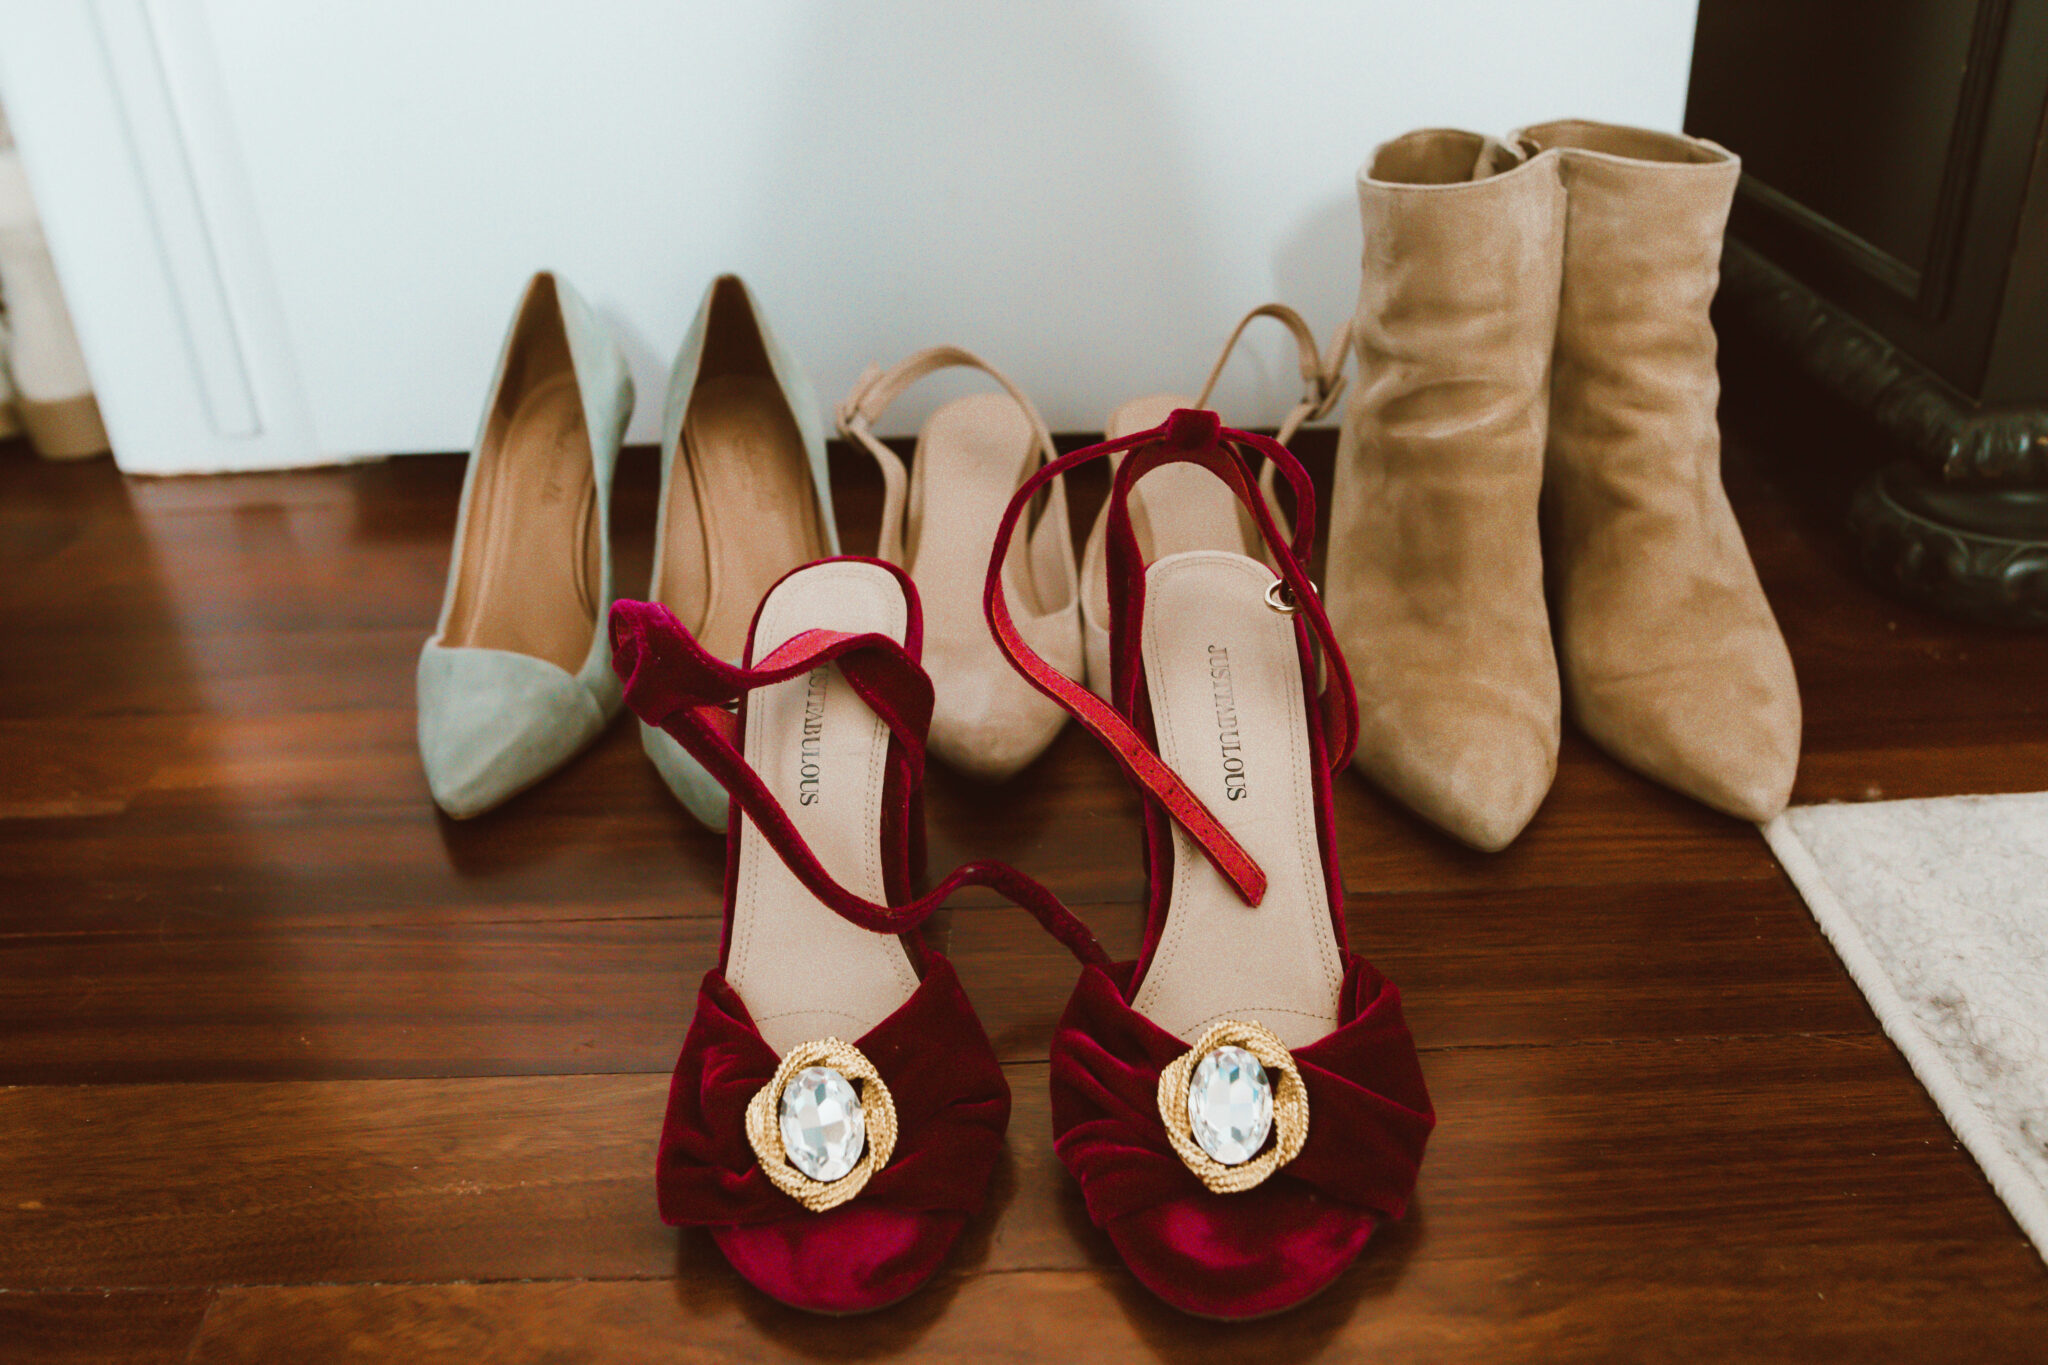 Clip On Earrings by popular Chicago fashion blog, Glass of Glam: image of brown suede ankle boots, red velvet strappy pumps, green suede heels, and brown suede sling back heels.